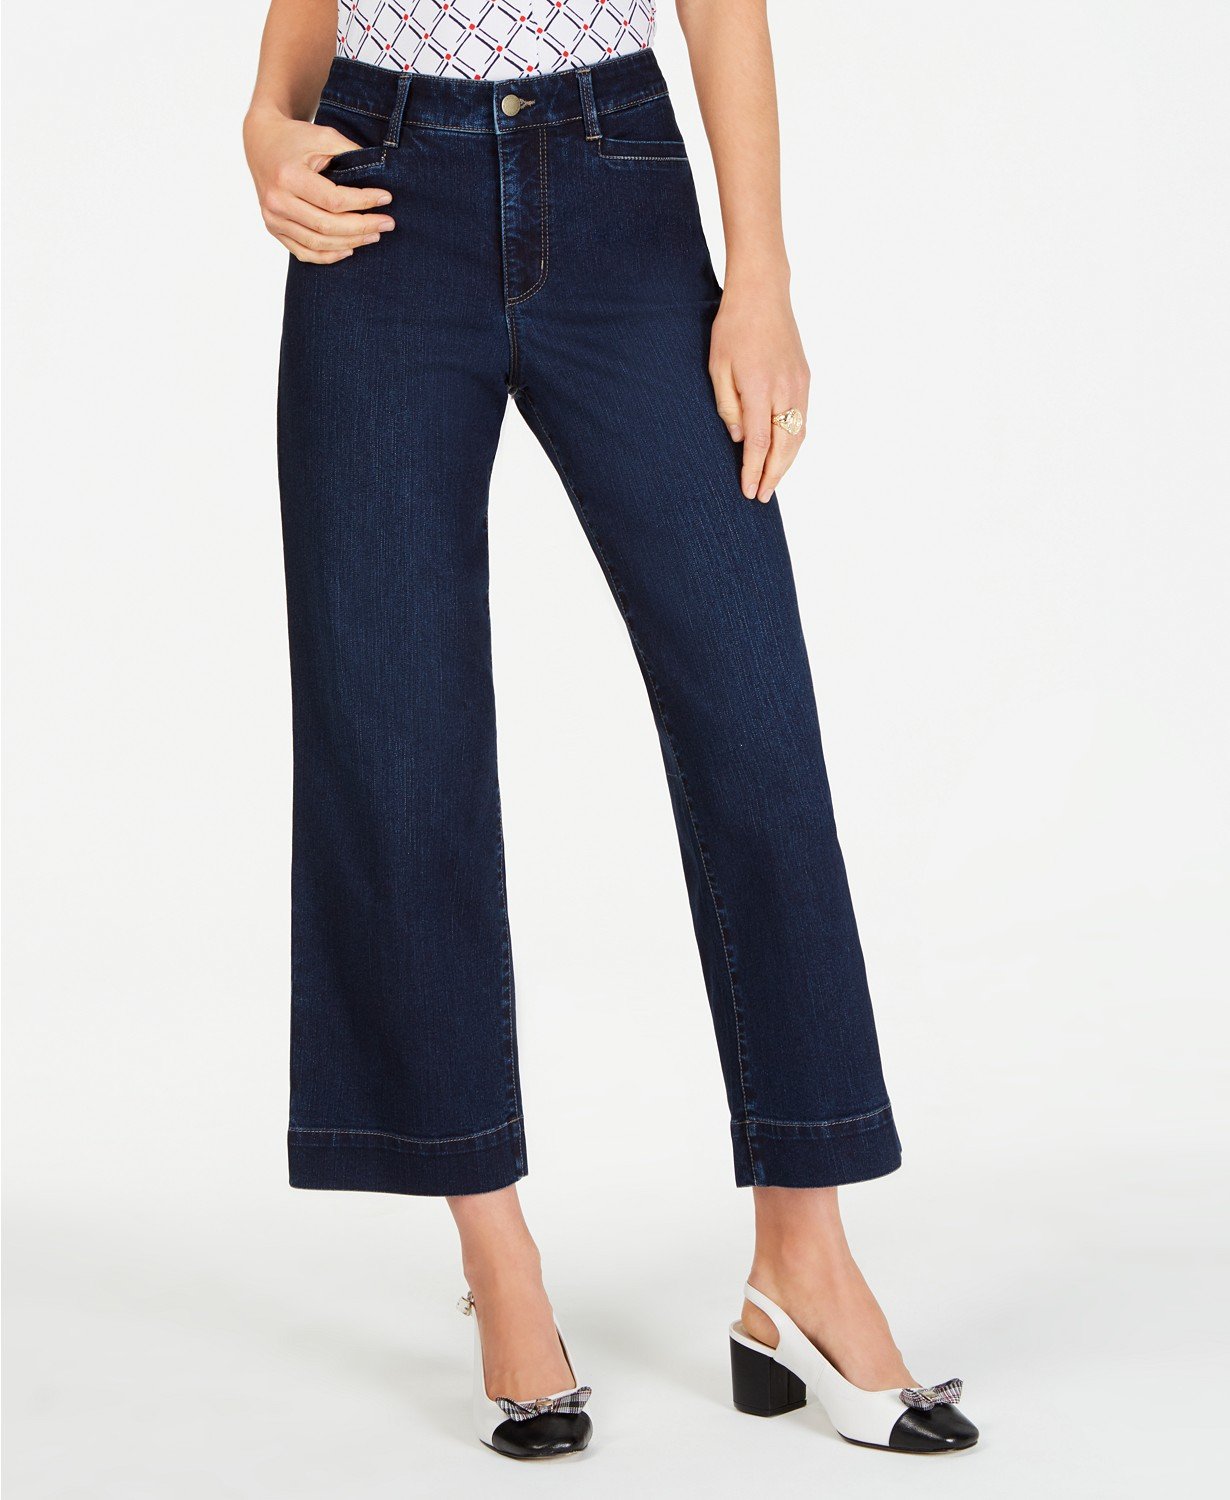 wide leg jeans for petite women